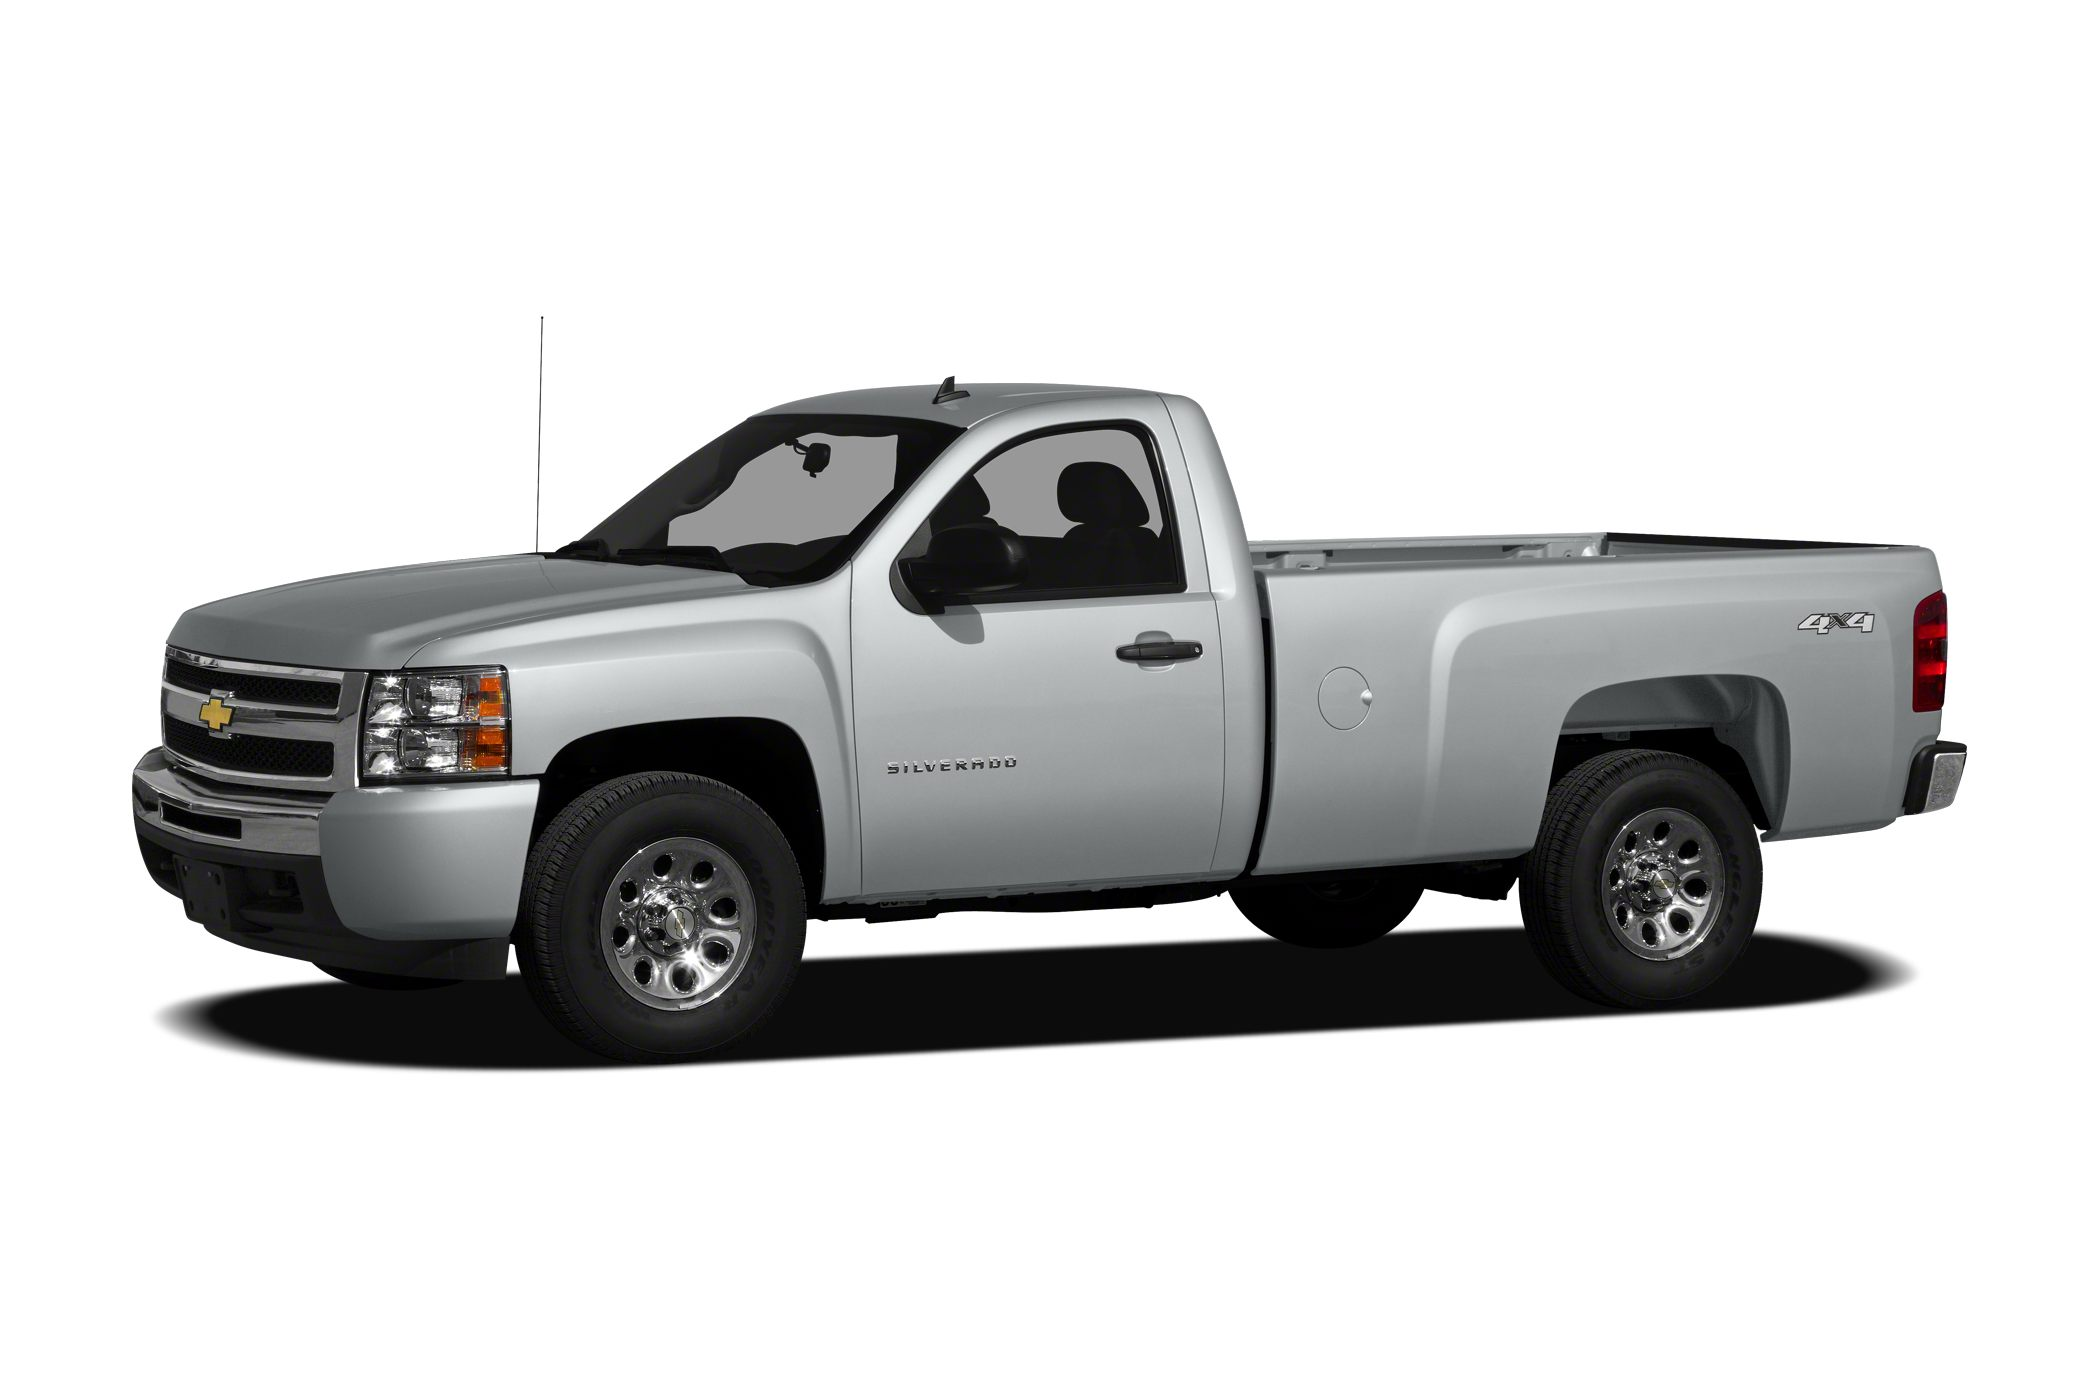 2012 Chevrolet Silverado 1500 LT Crew Cab Pickup for sale in Pensacola for $31,994 with 37,175 miles.